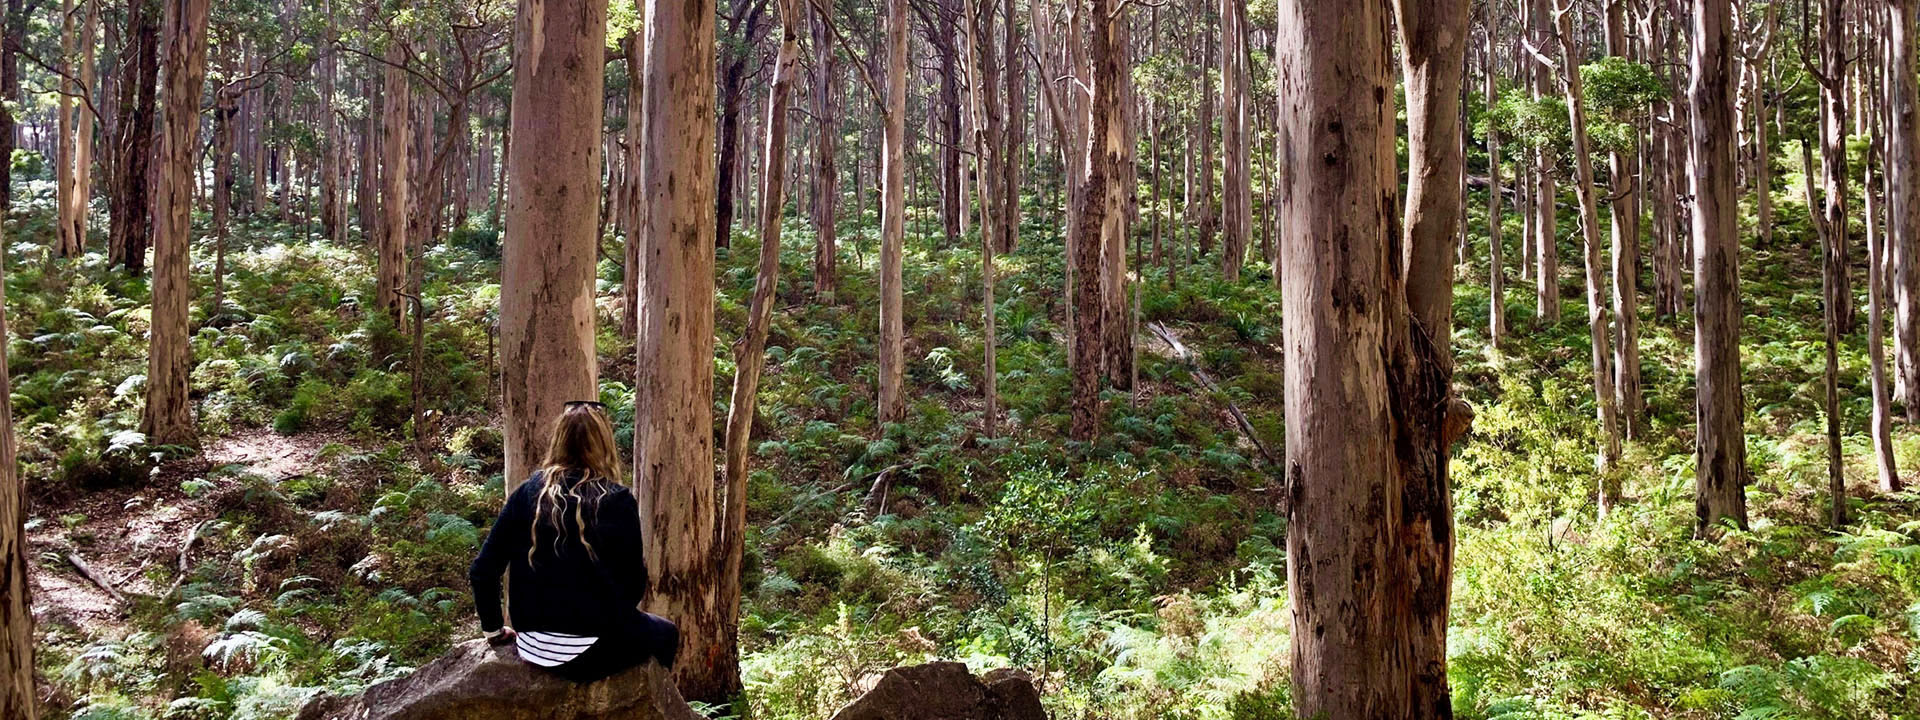 Boranup Karri Forest. Photo by Kelly Scherbarth/DBCA